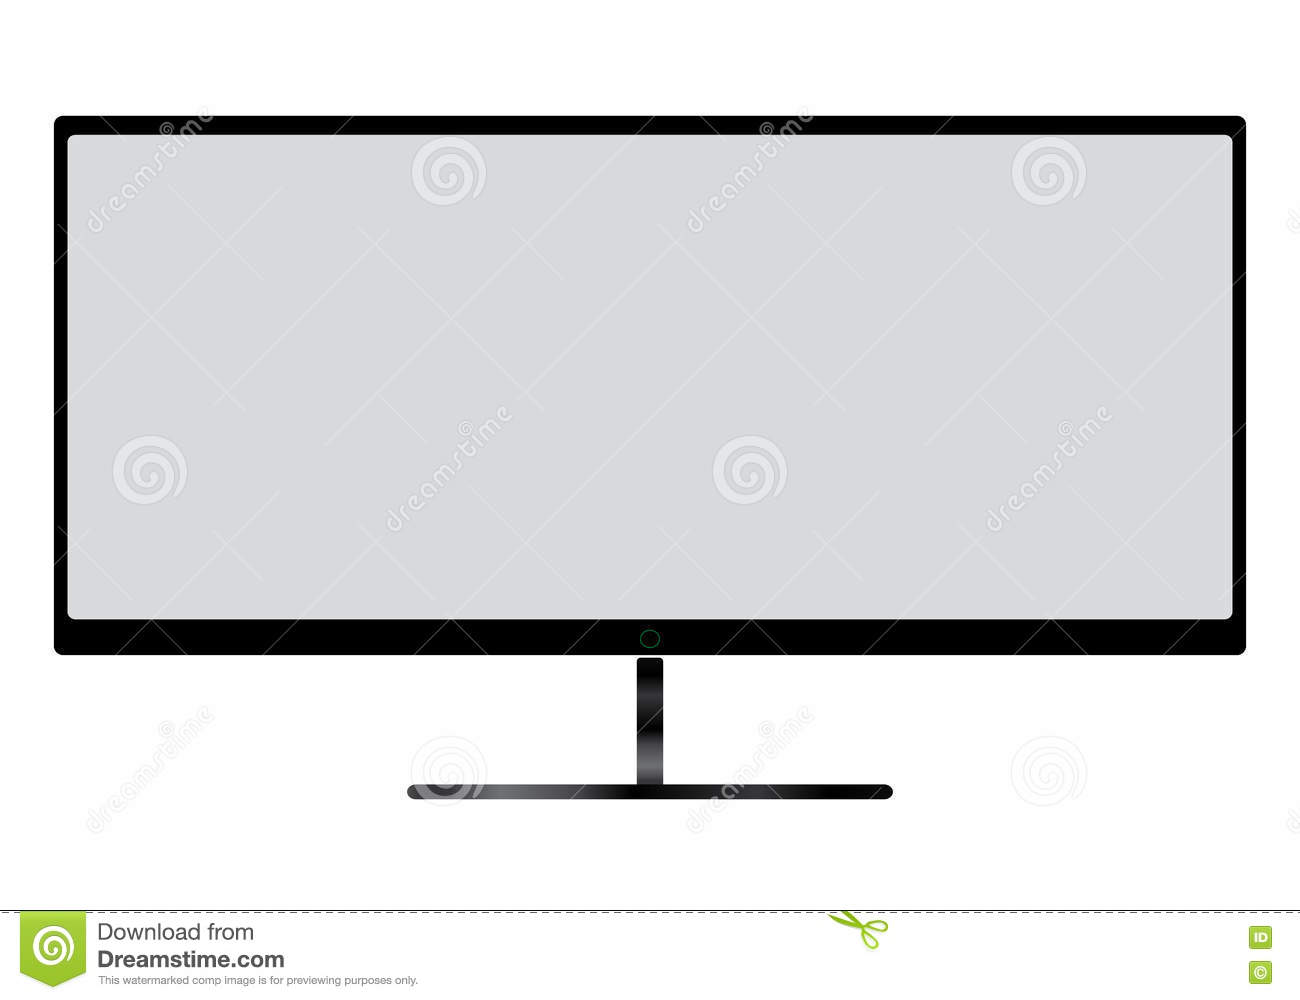 TV Flat Screen Lcd, Plasma Realistic Illustration With Gray